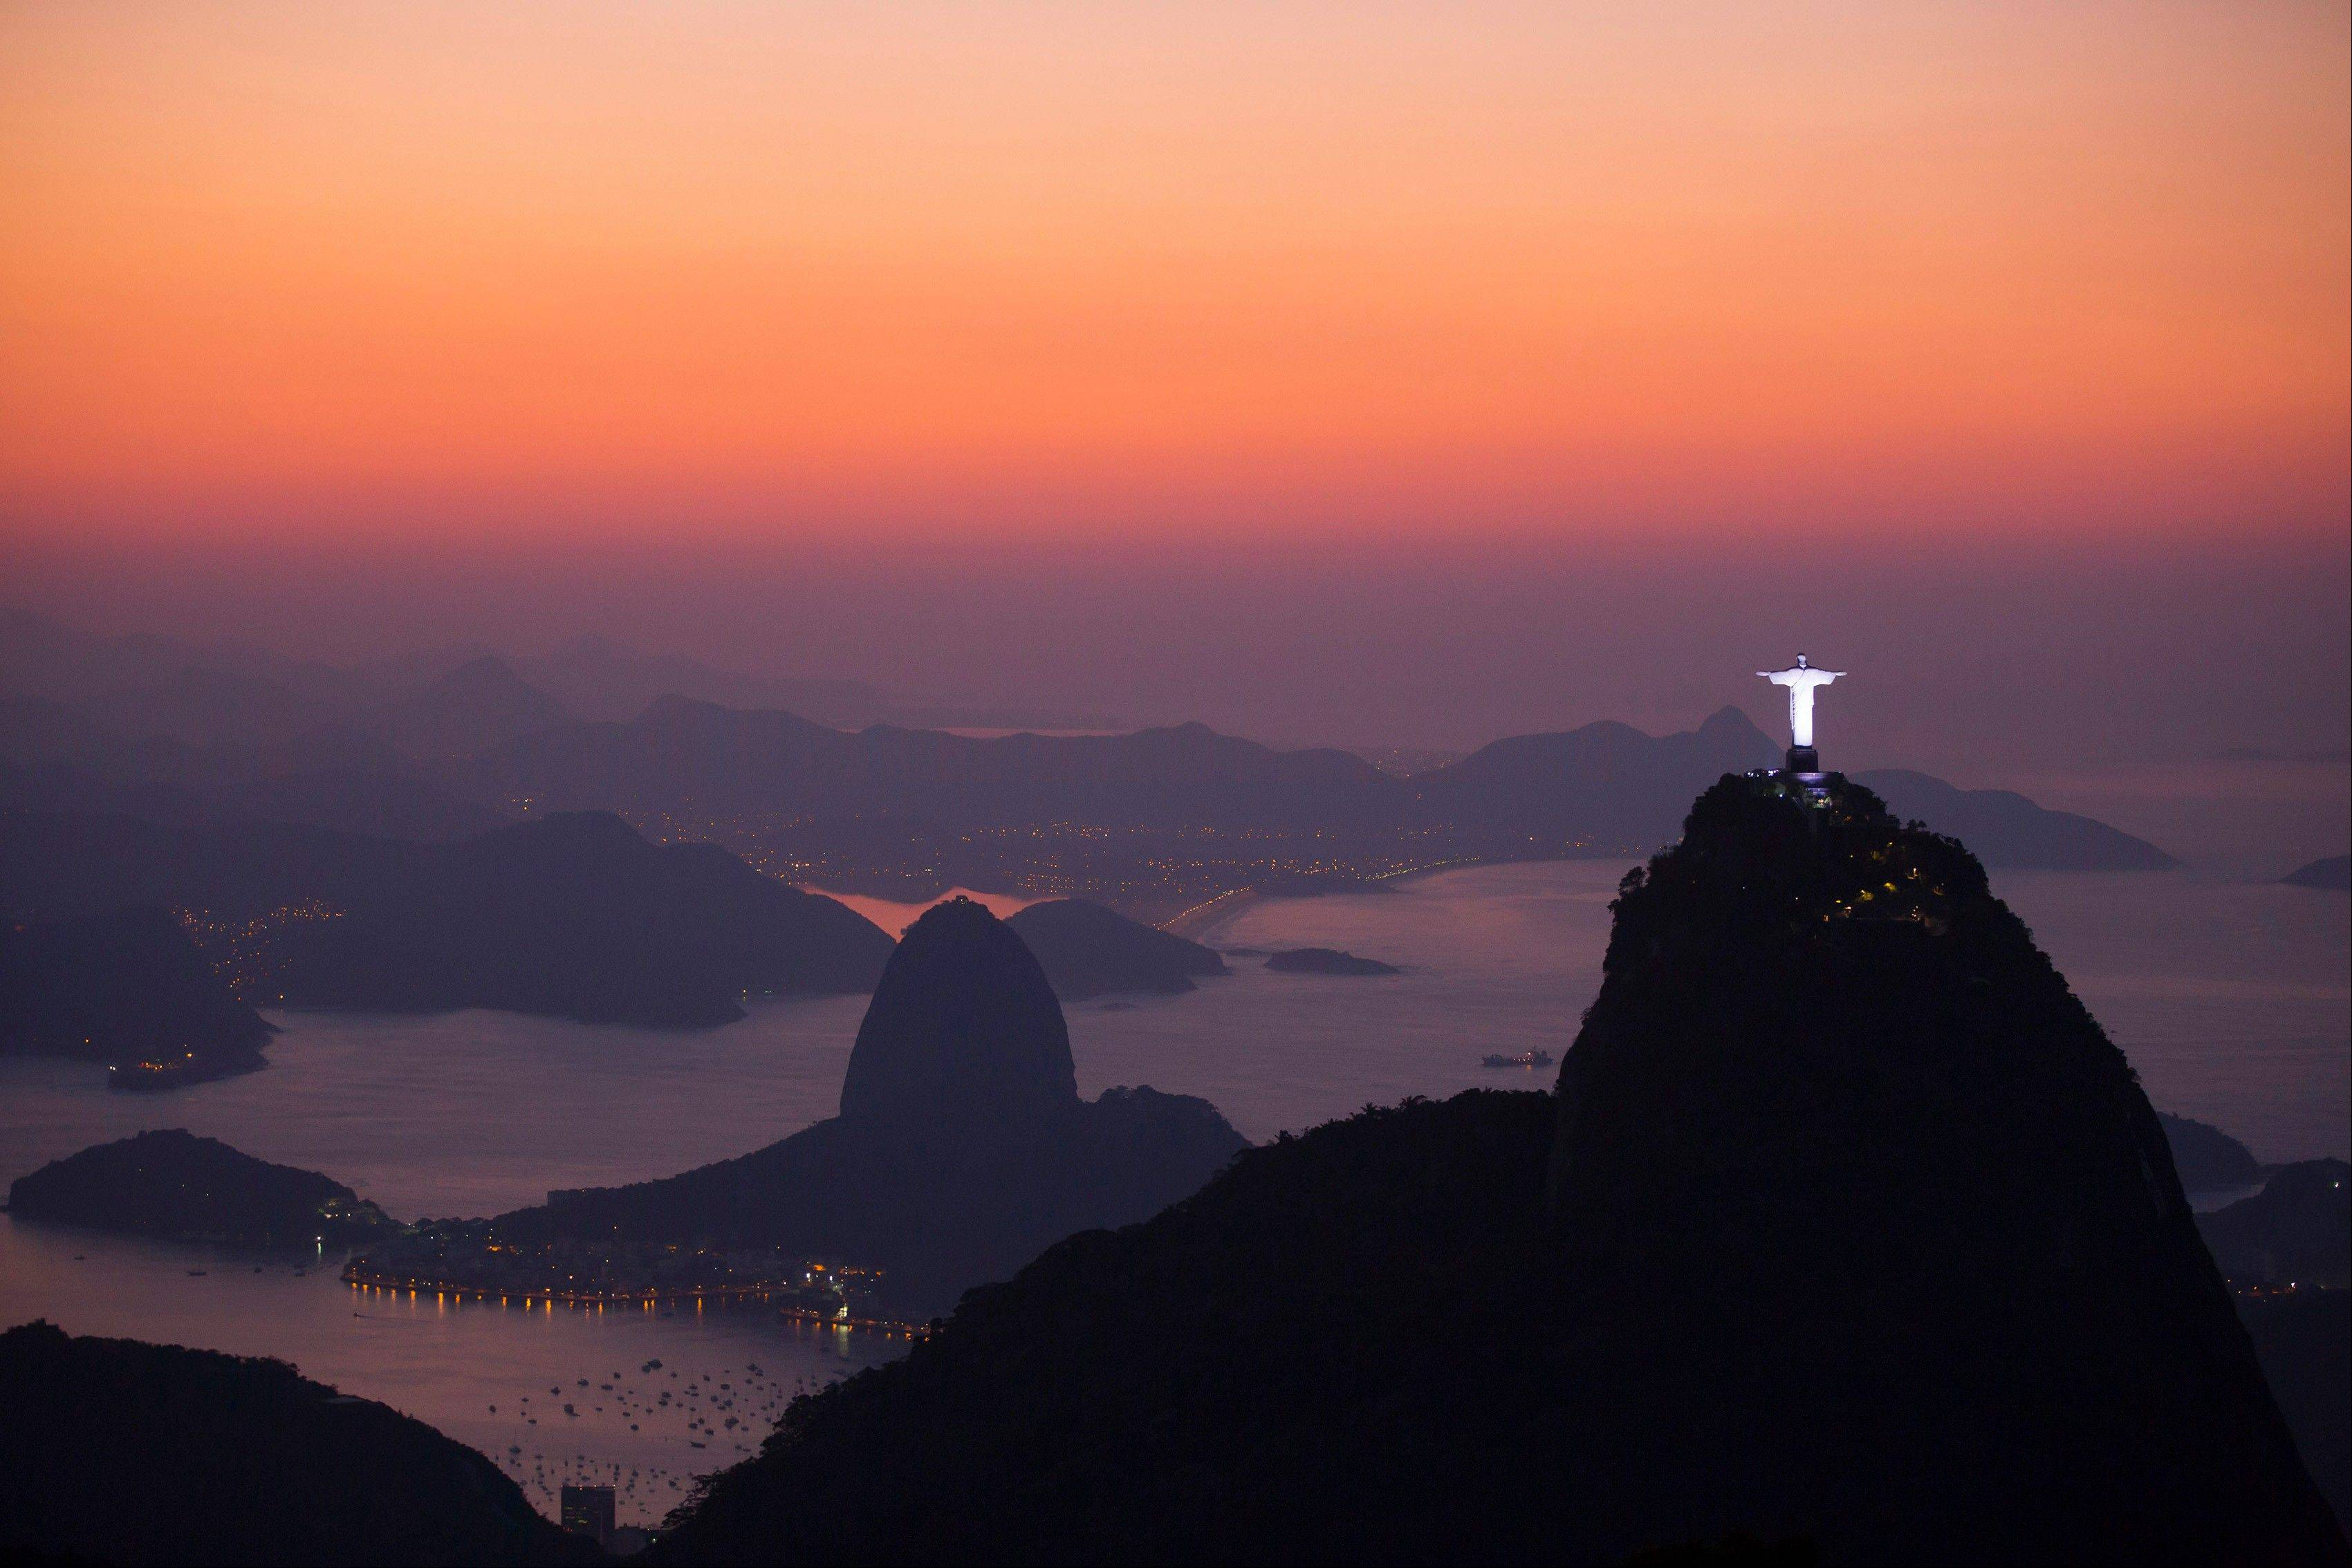 The Christ the Redeemer statue on the top of Corcovado Mountain and Sugar Loaf Mountain.